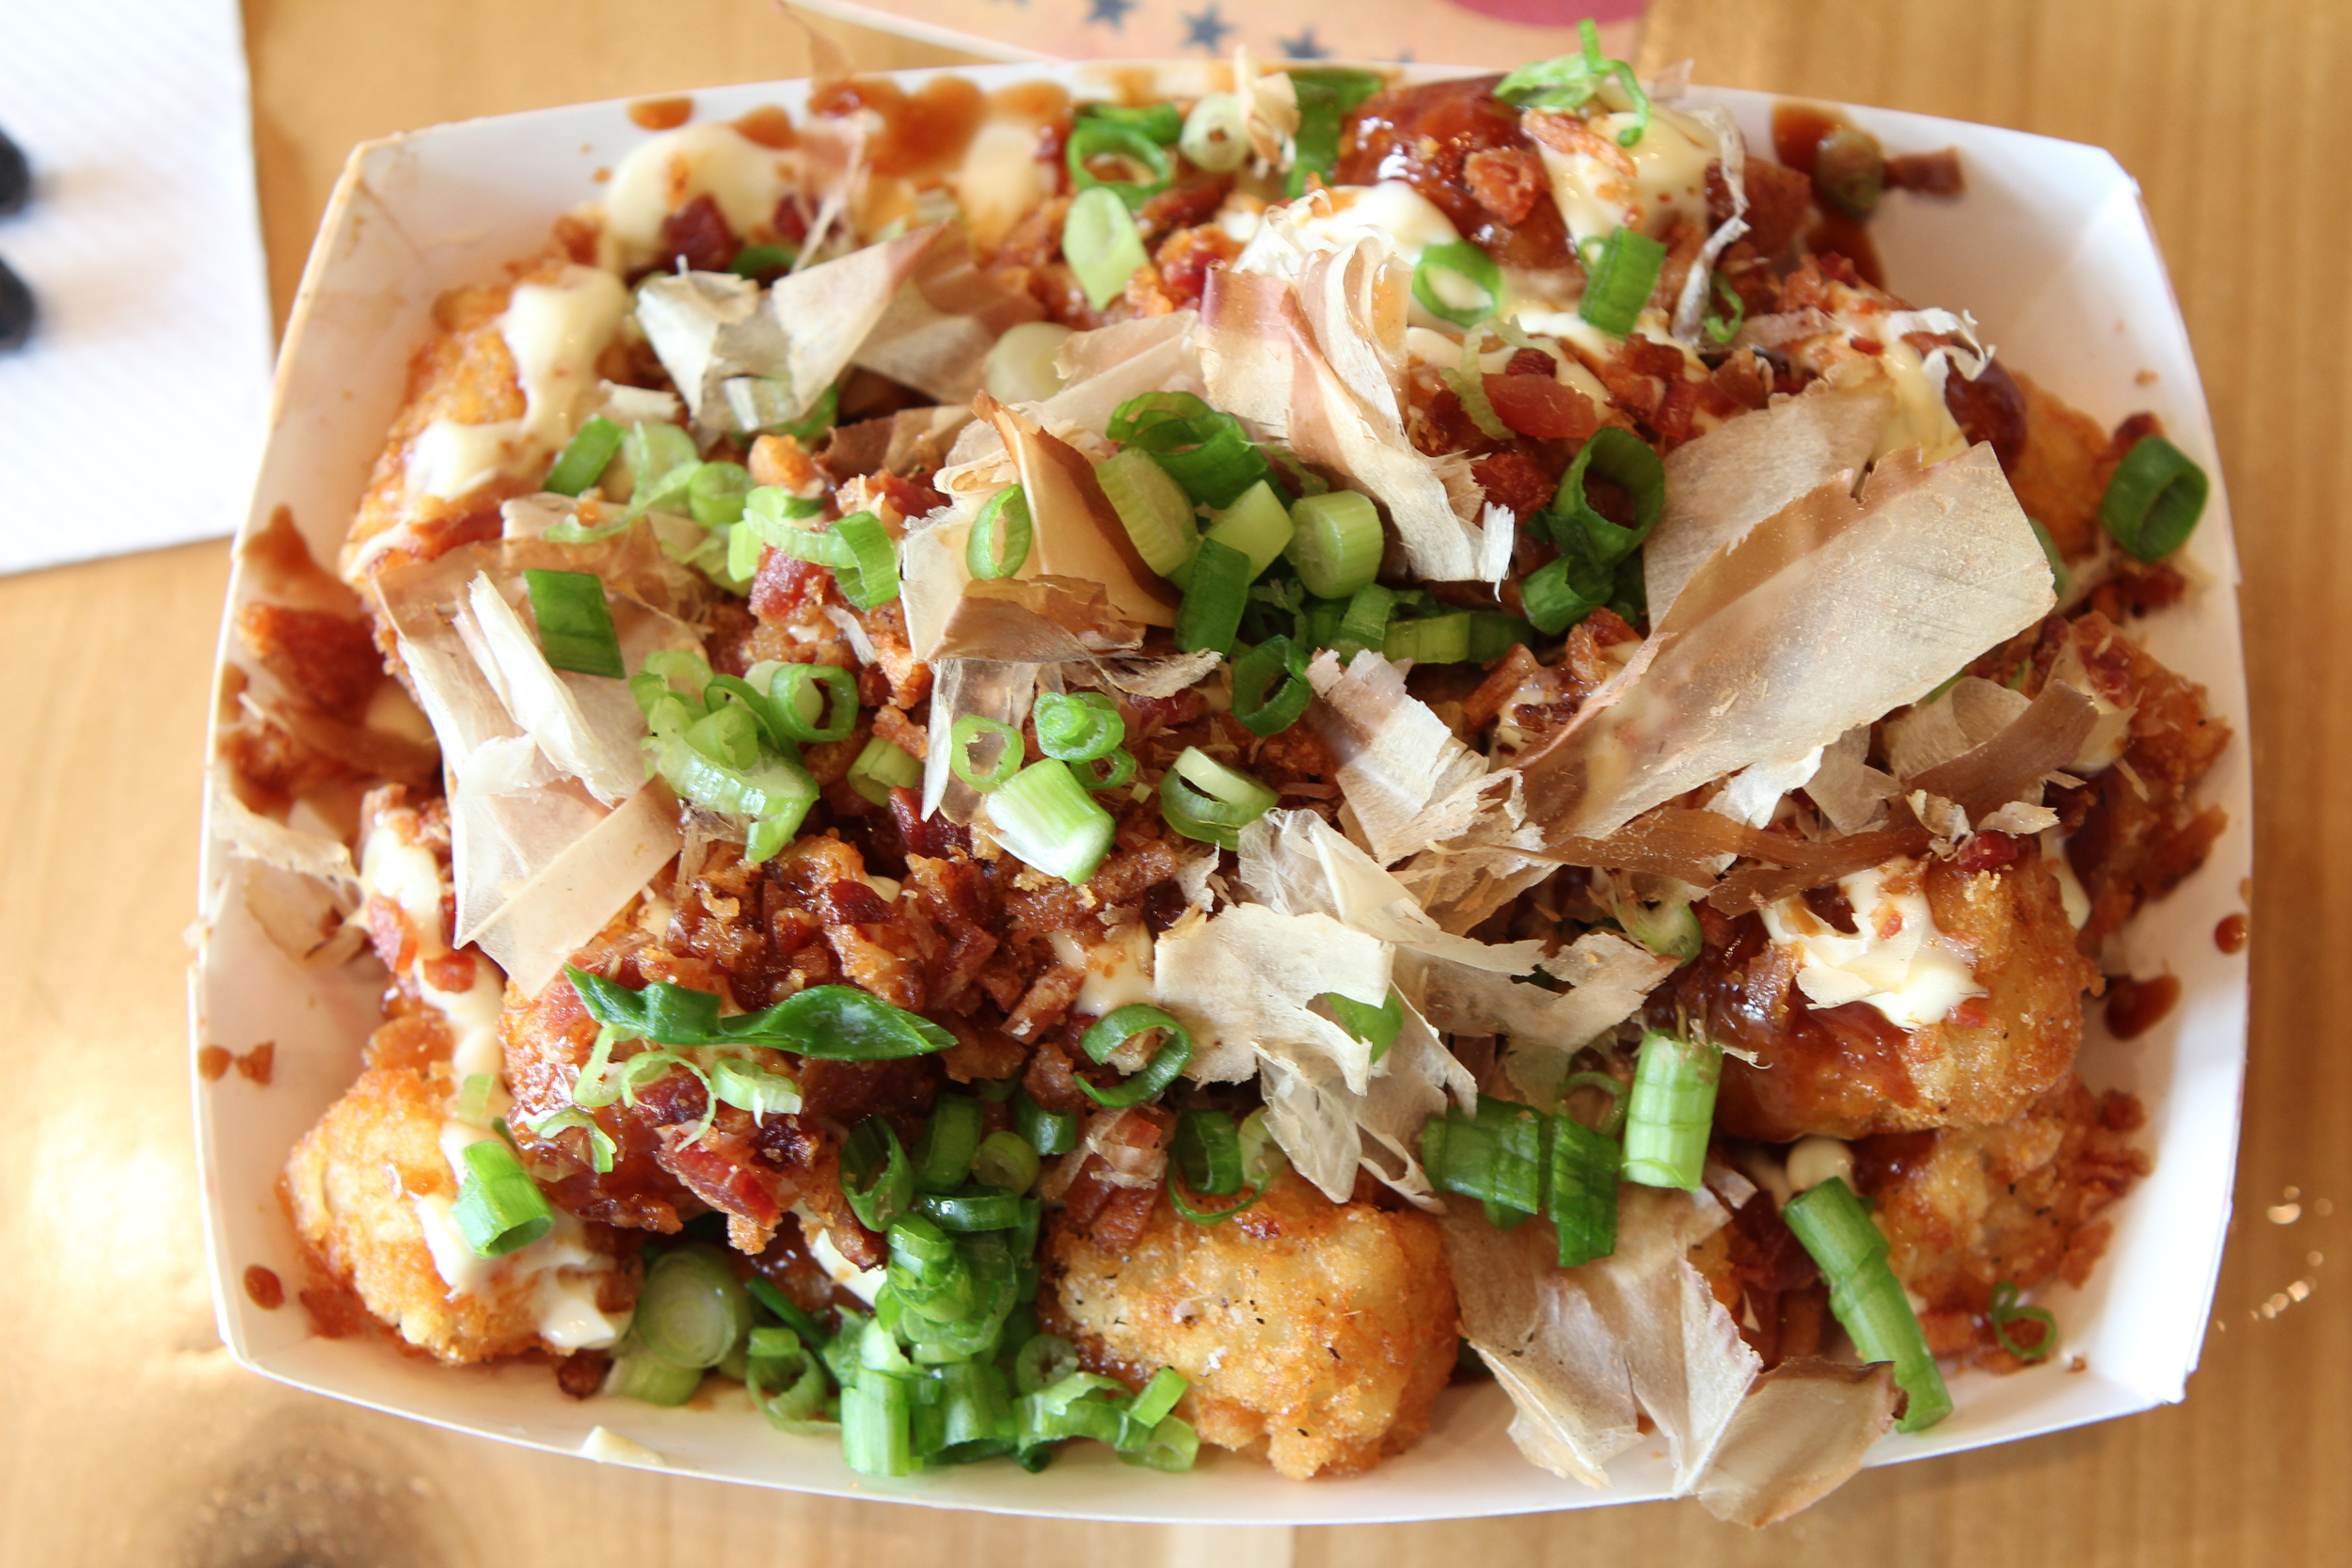 Tater Tot Okonomiyaki...a must try. Click the photo to see it move.